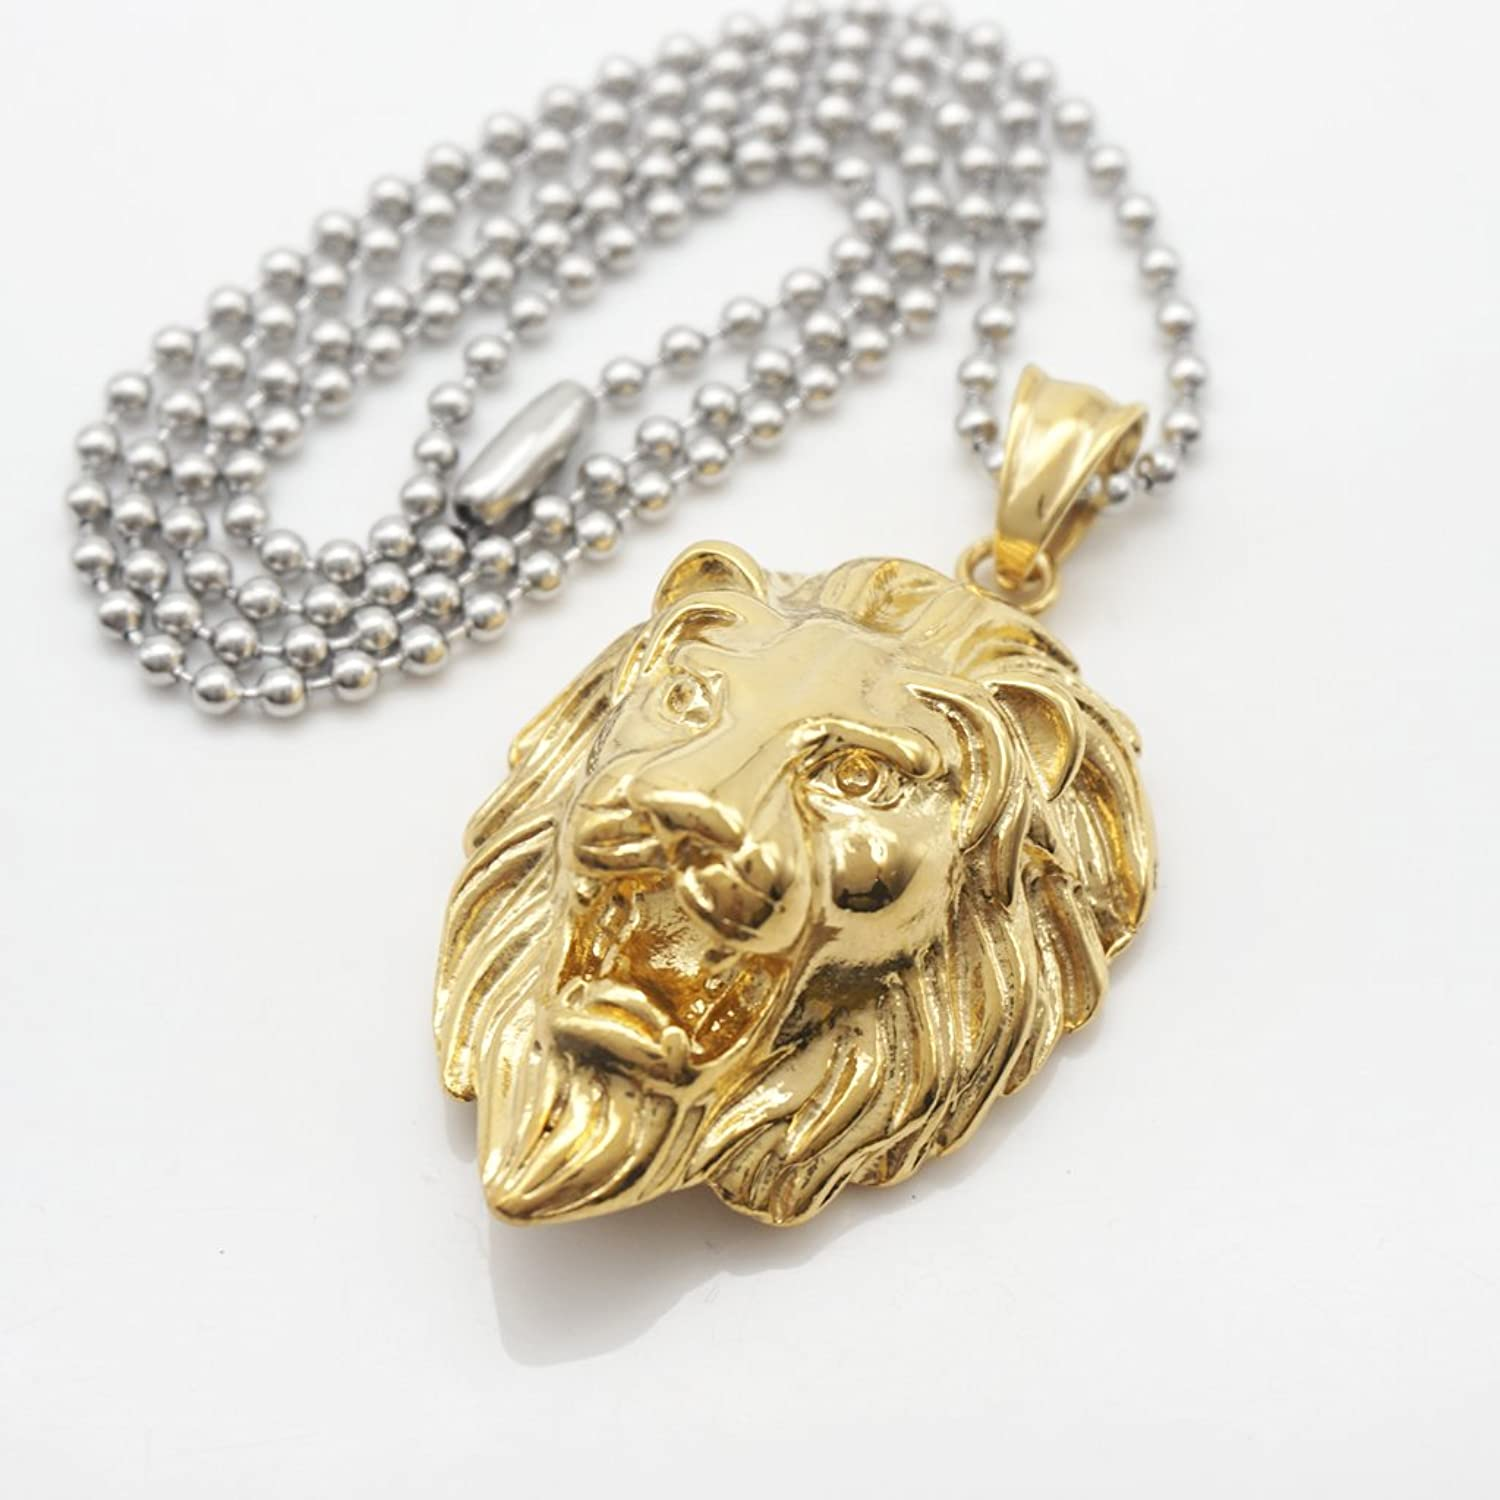 tone itm face lion men for gold pendant ebay charm two head